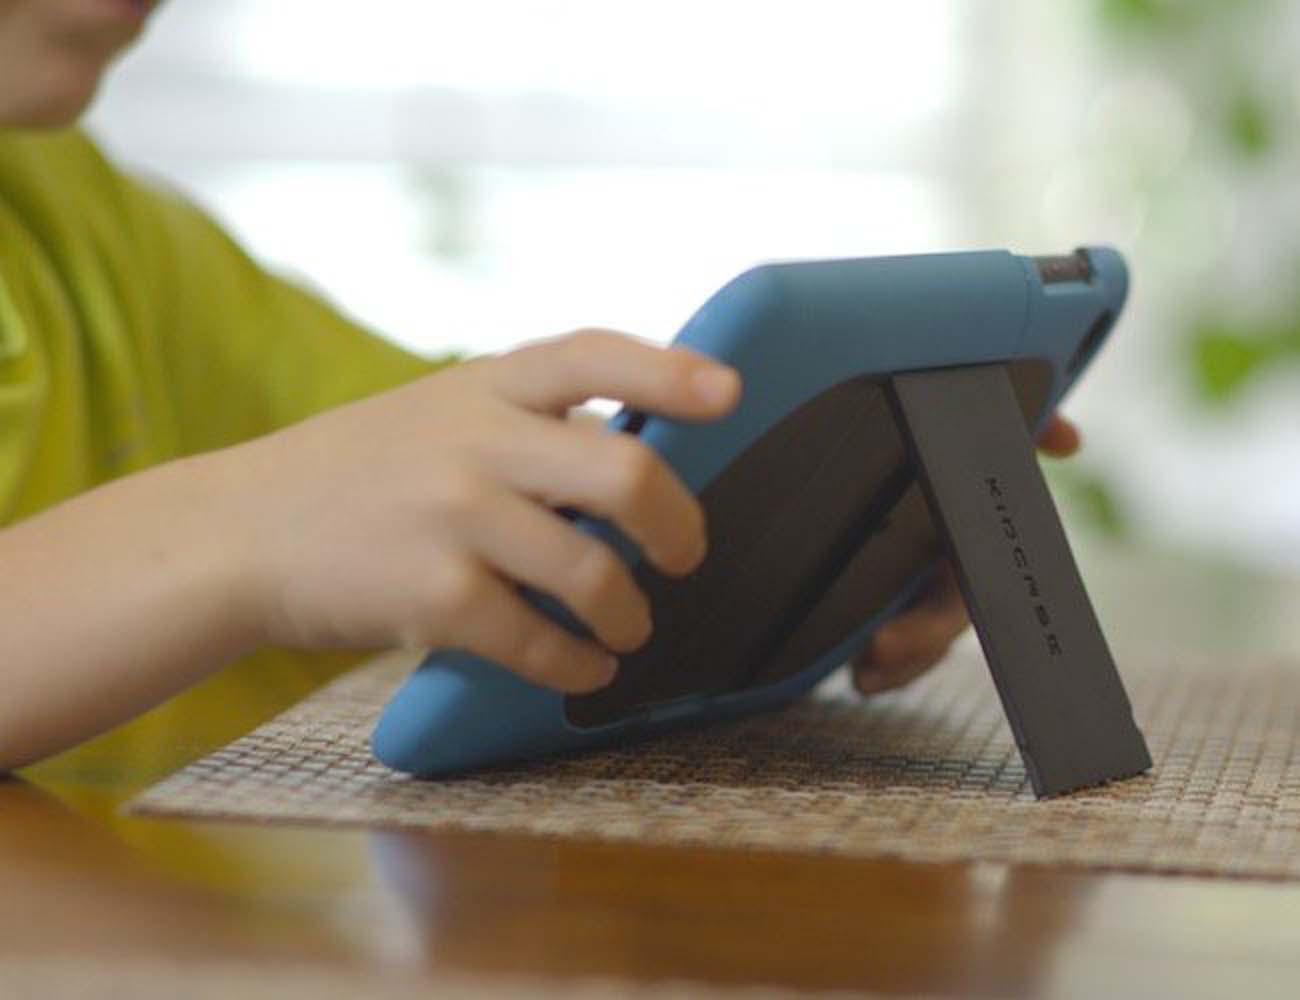 KiDCASE – The iPad Case With Built-In Parental Controls That Actually Work!